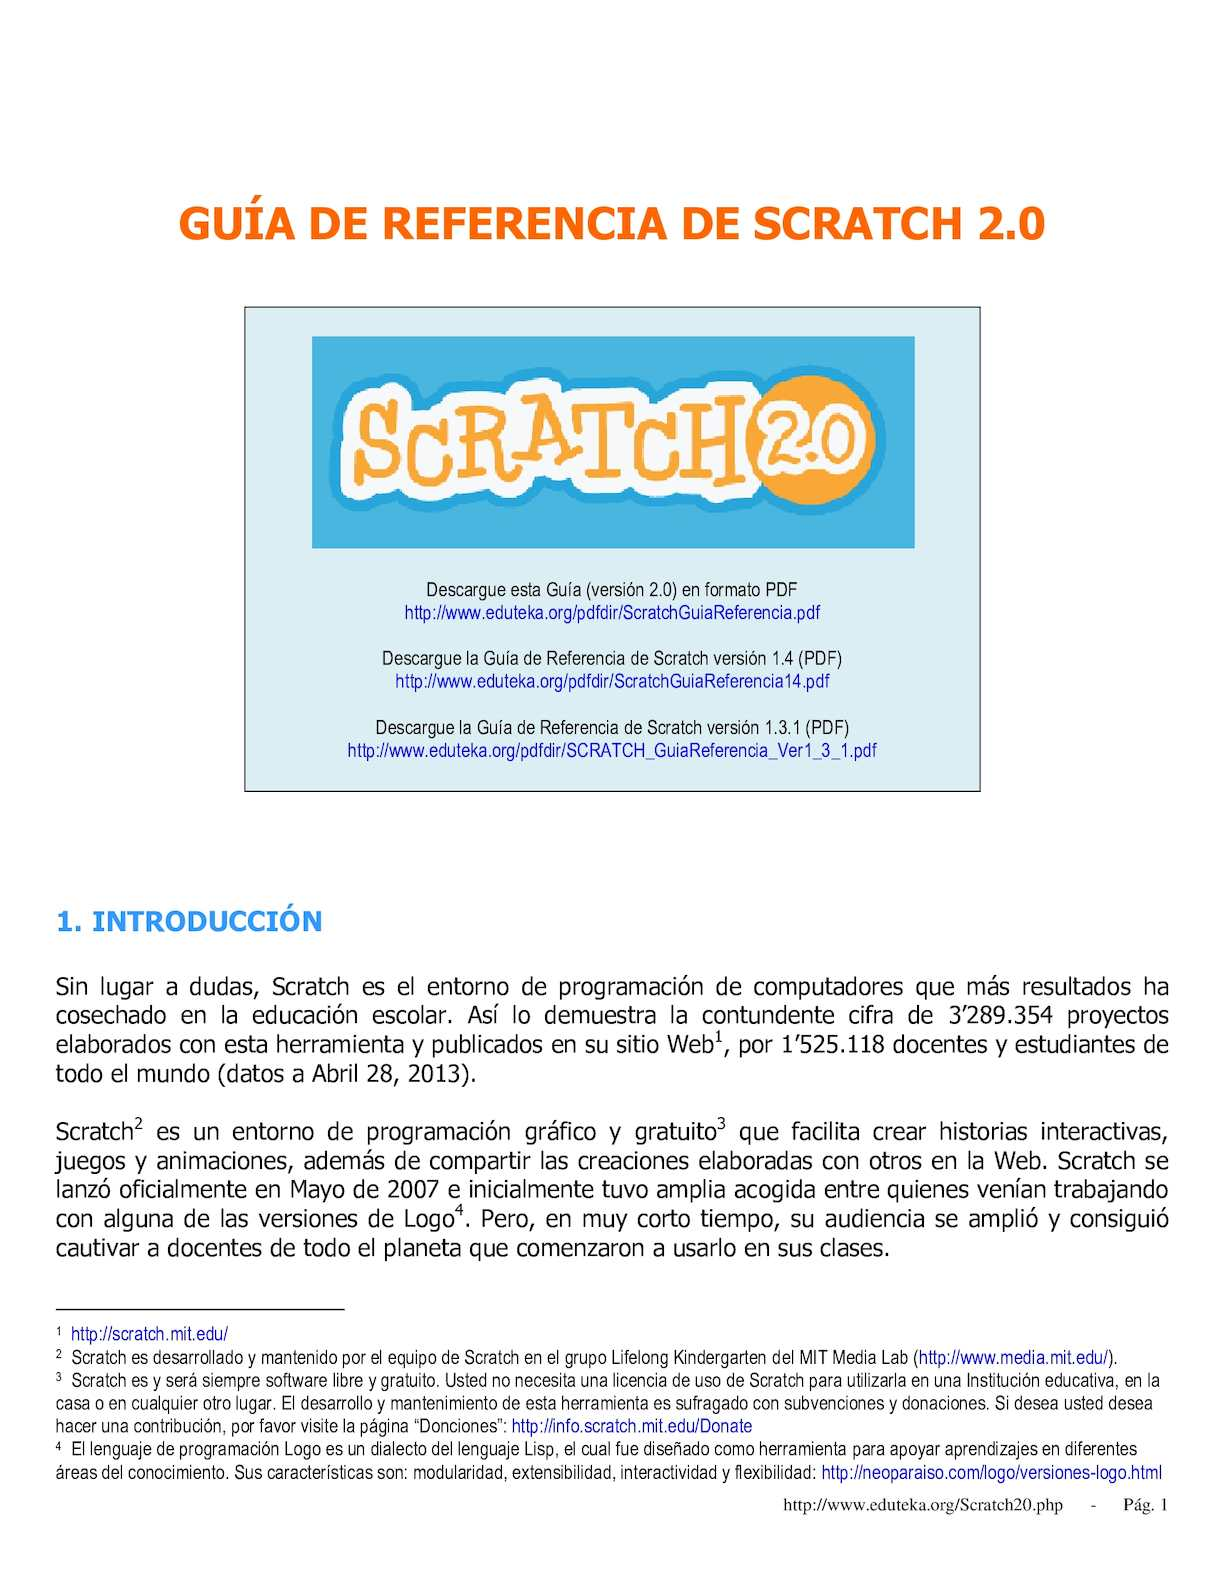 Scratch Guia Referencia